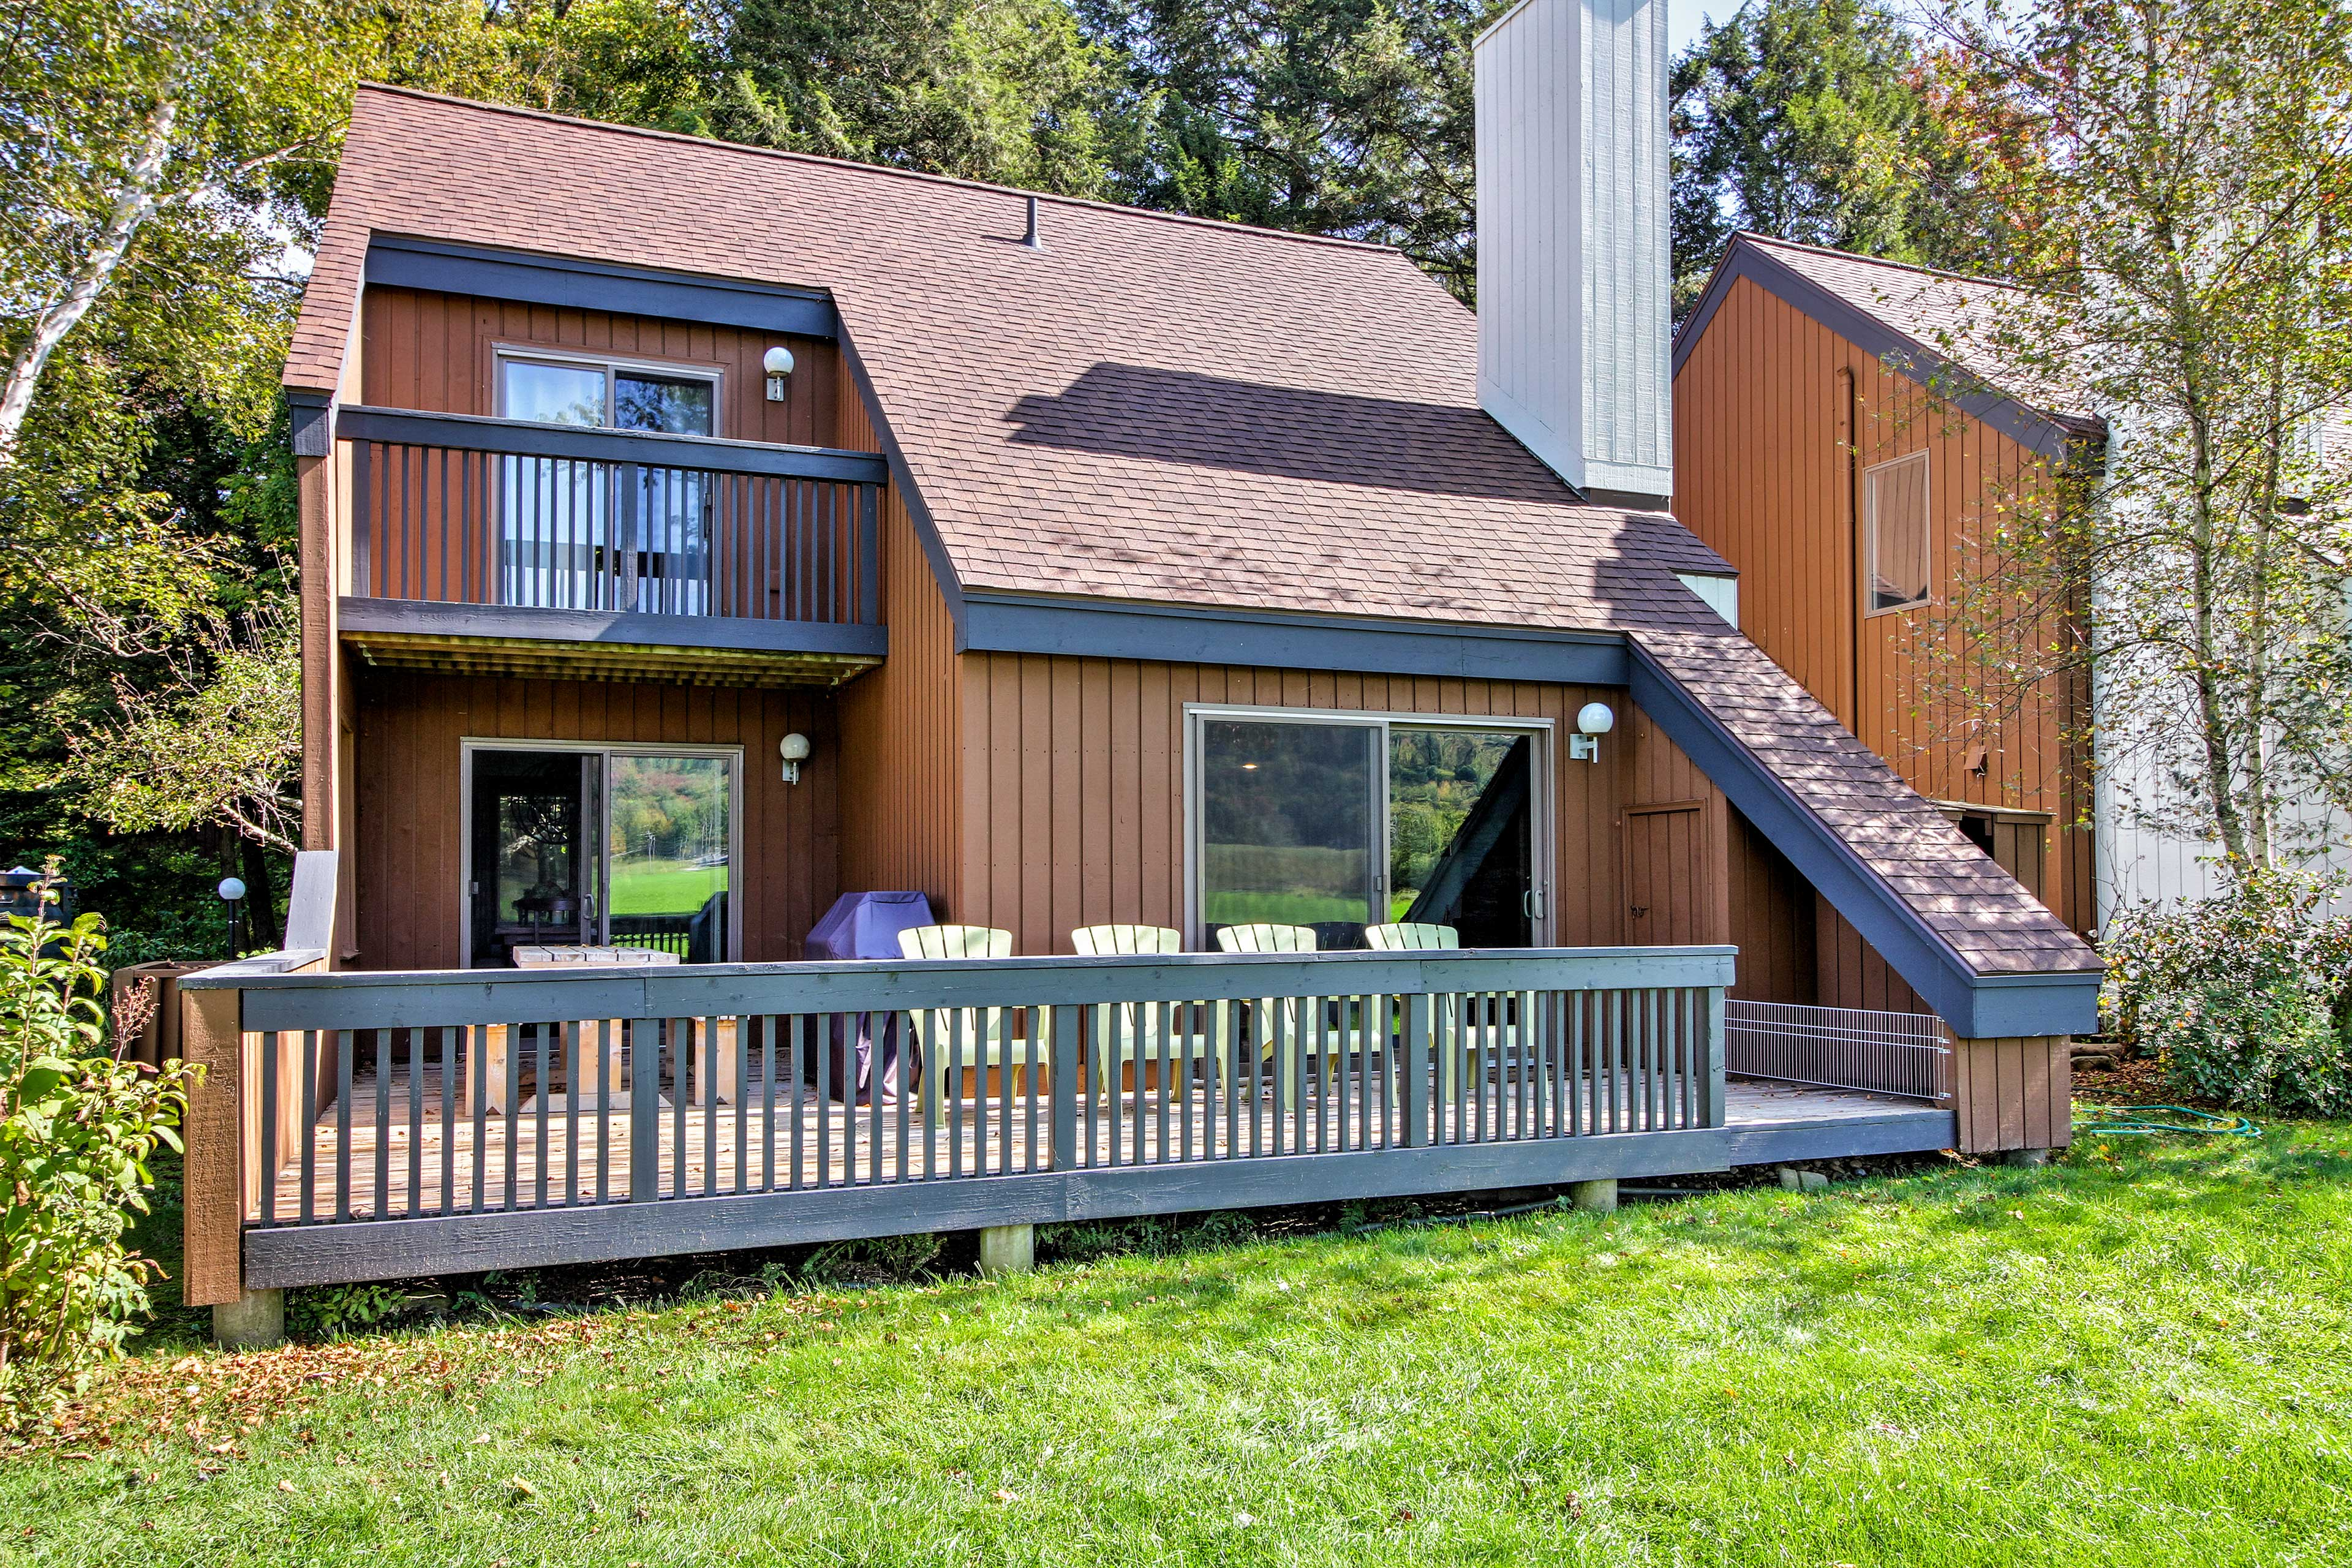 Escape to Vermont and stay at this 2-bedroom, 2-bath vacation rental in Stowe!